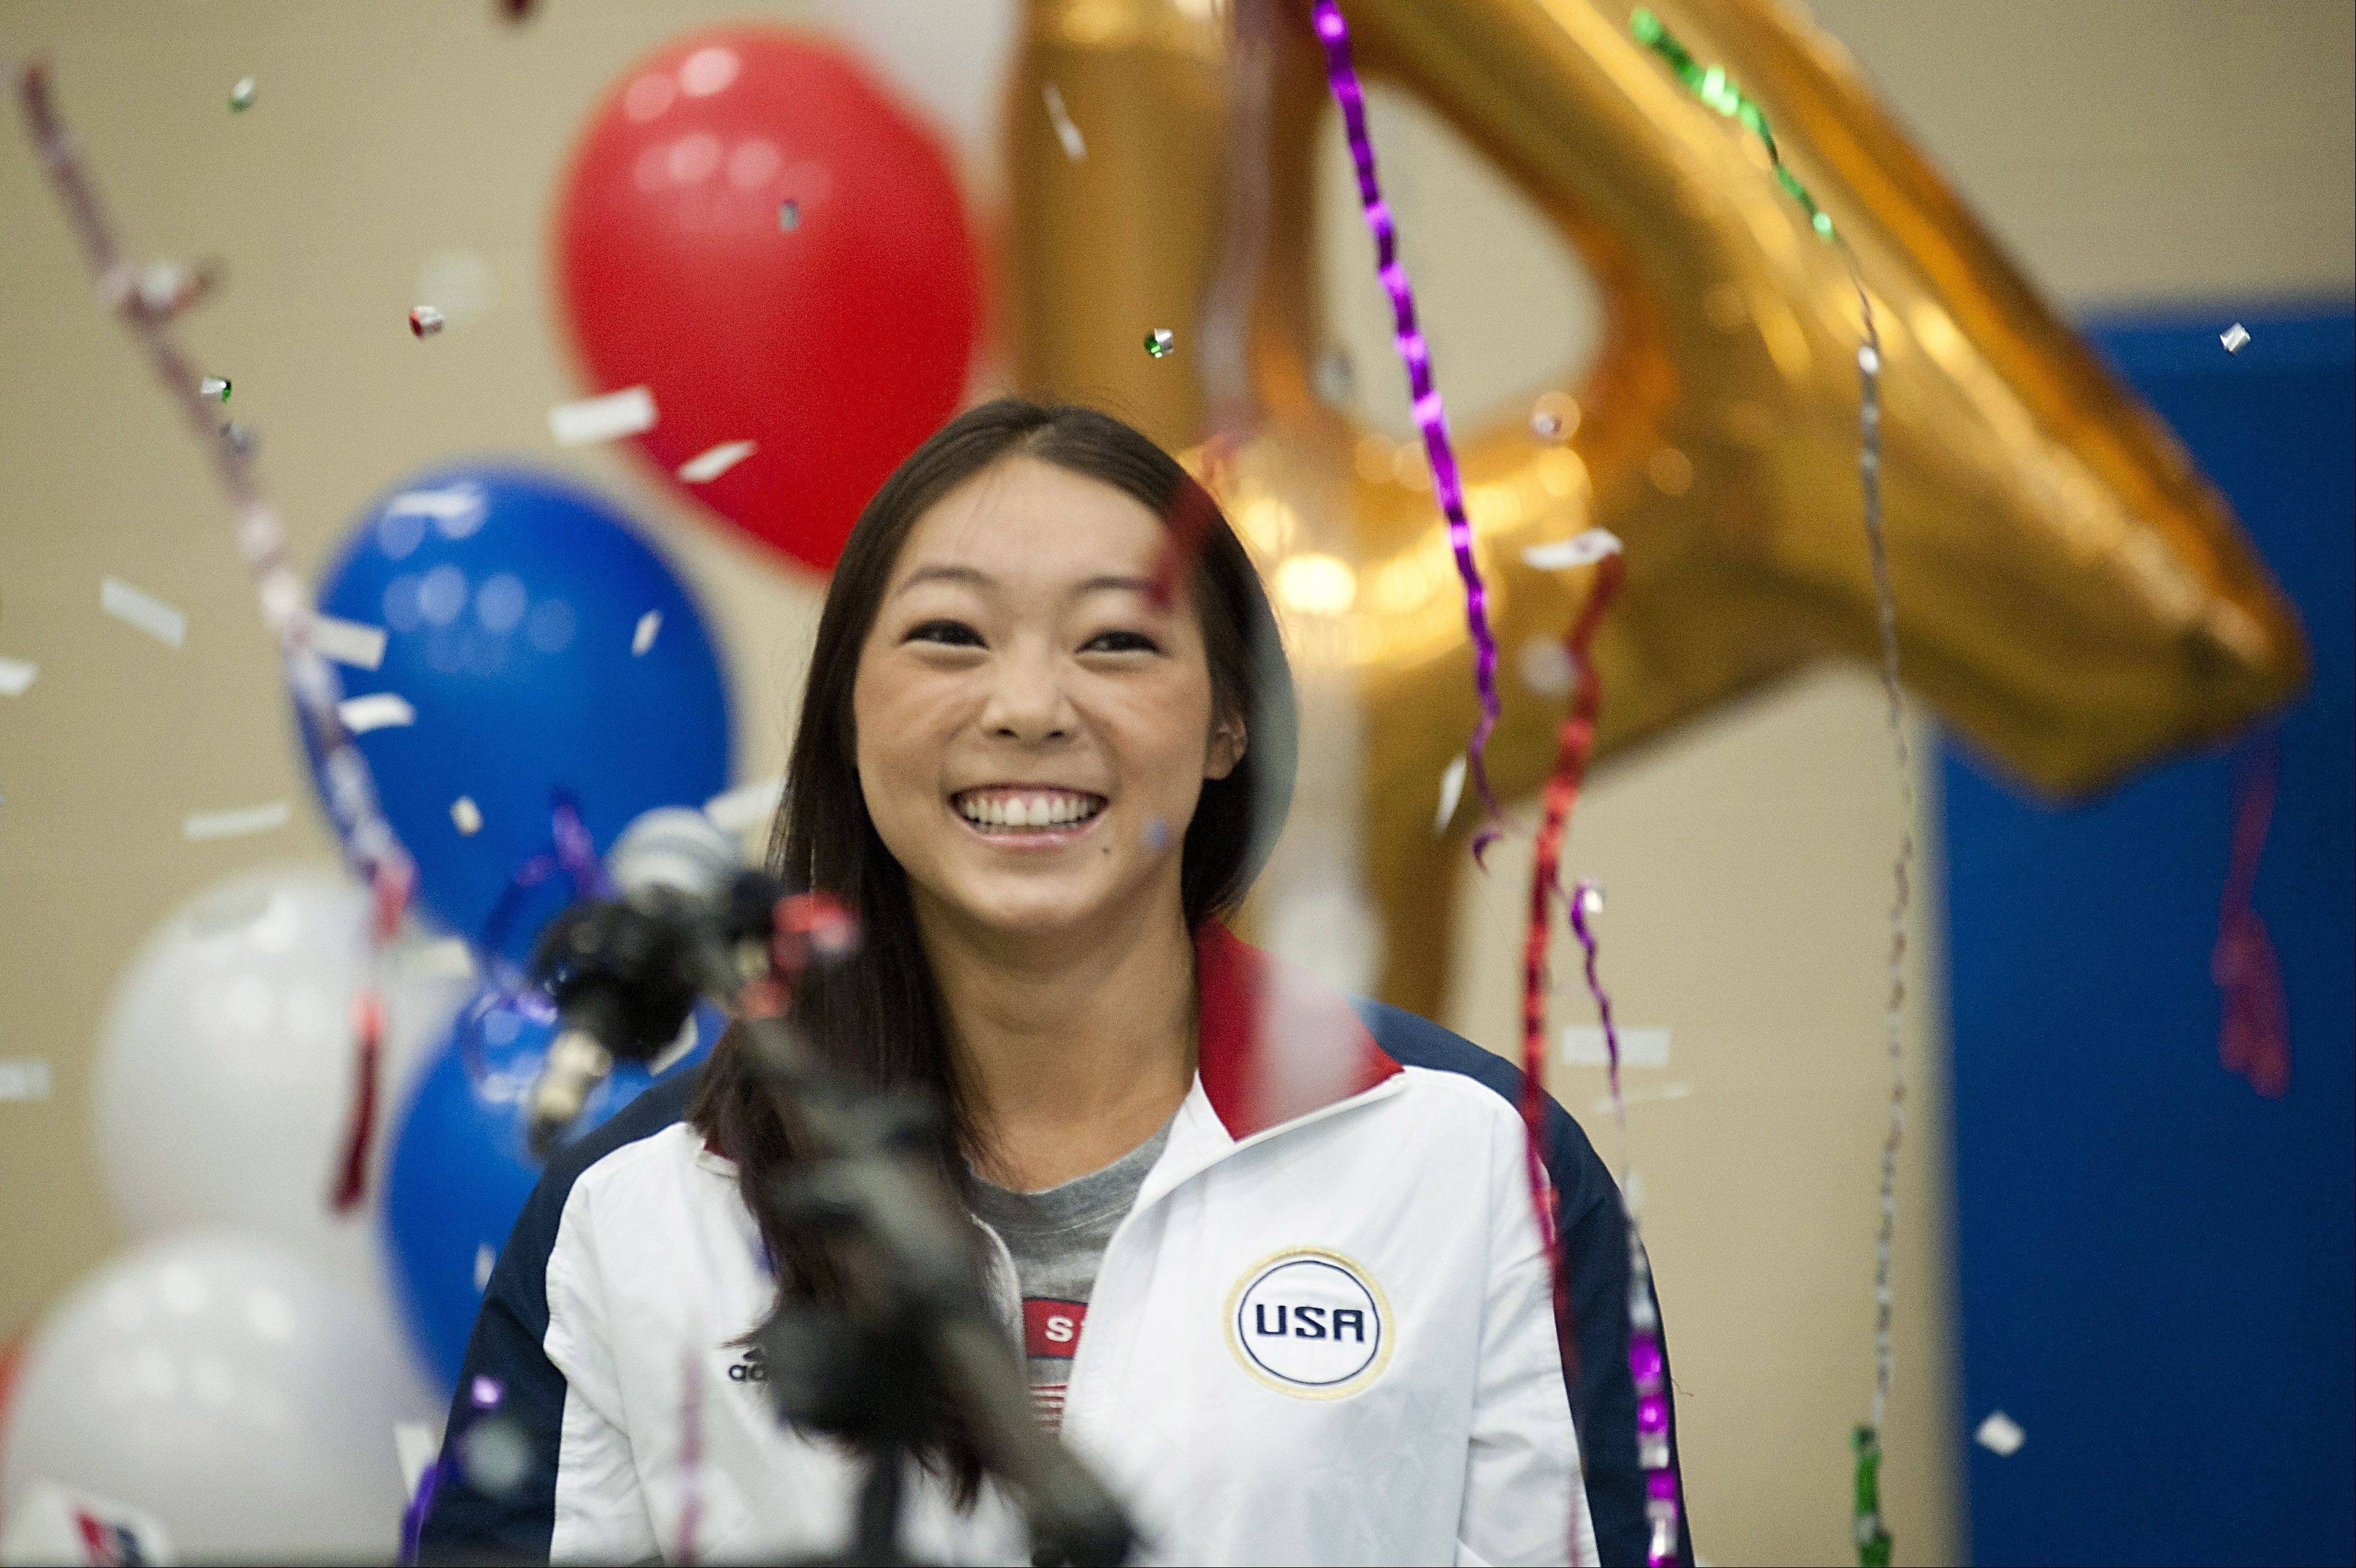 Aurora gymnast Anna Li was showered with cheers and confetti in her hometown before she left for the Olympic Games in London. Li, a Waubonsie Valley graduate, was chosen as an alternate member of the U.S. Women�s Gymnastics Team, but a neck injury has forced her out of competition.